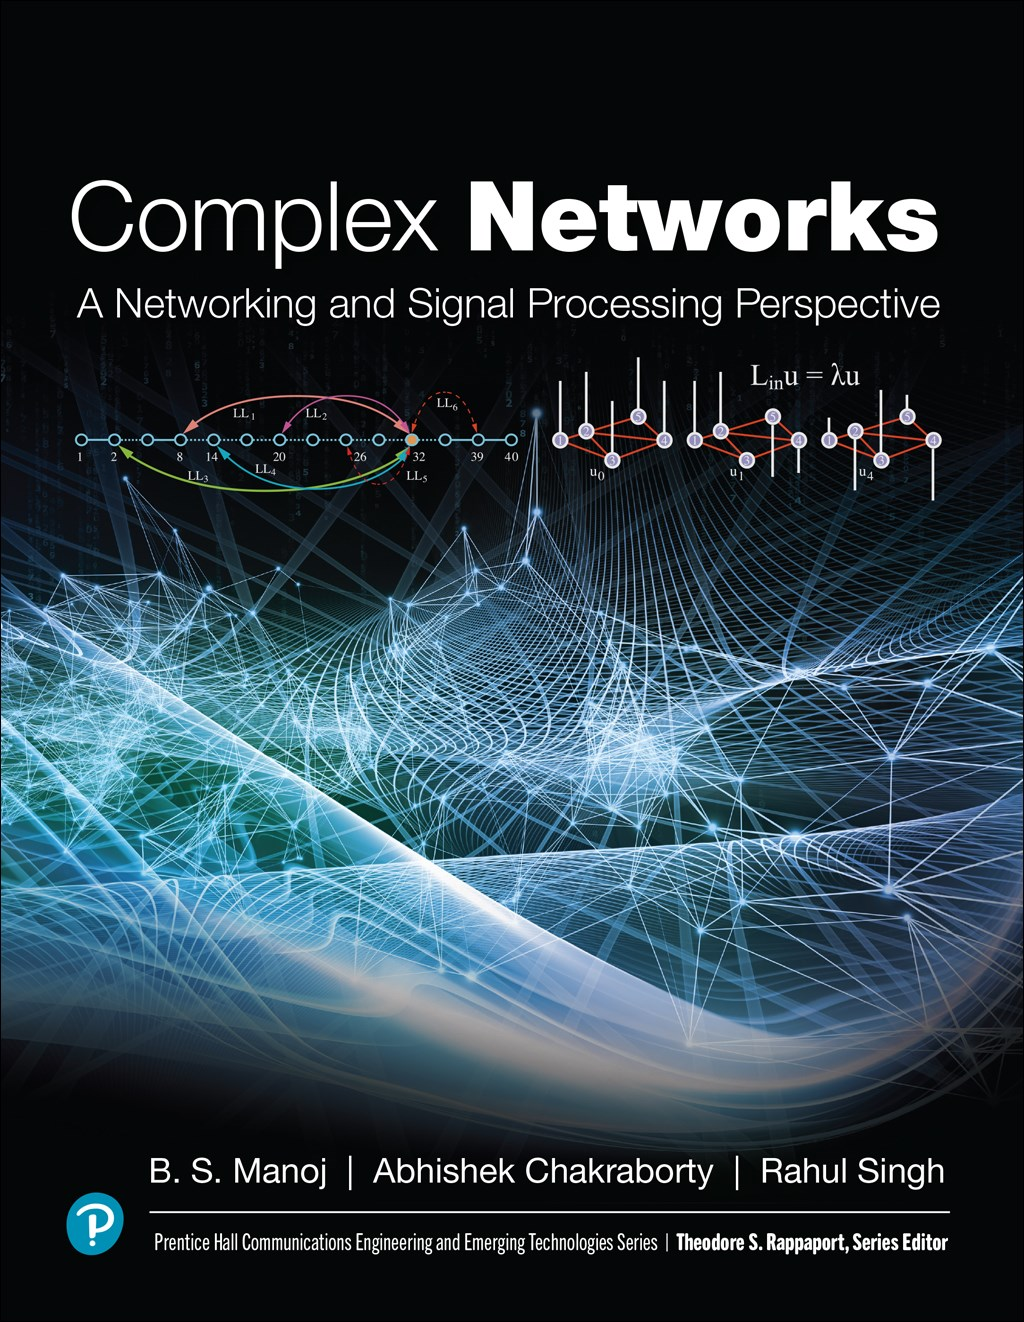 Complex Networks: A Networking and Signal Processing Perspective